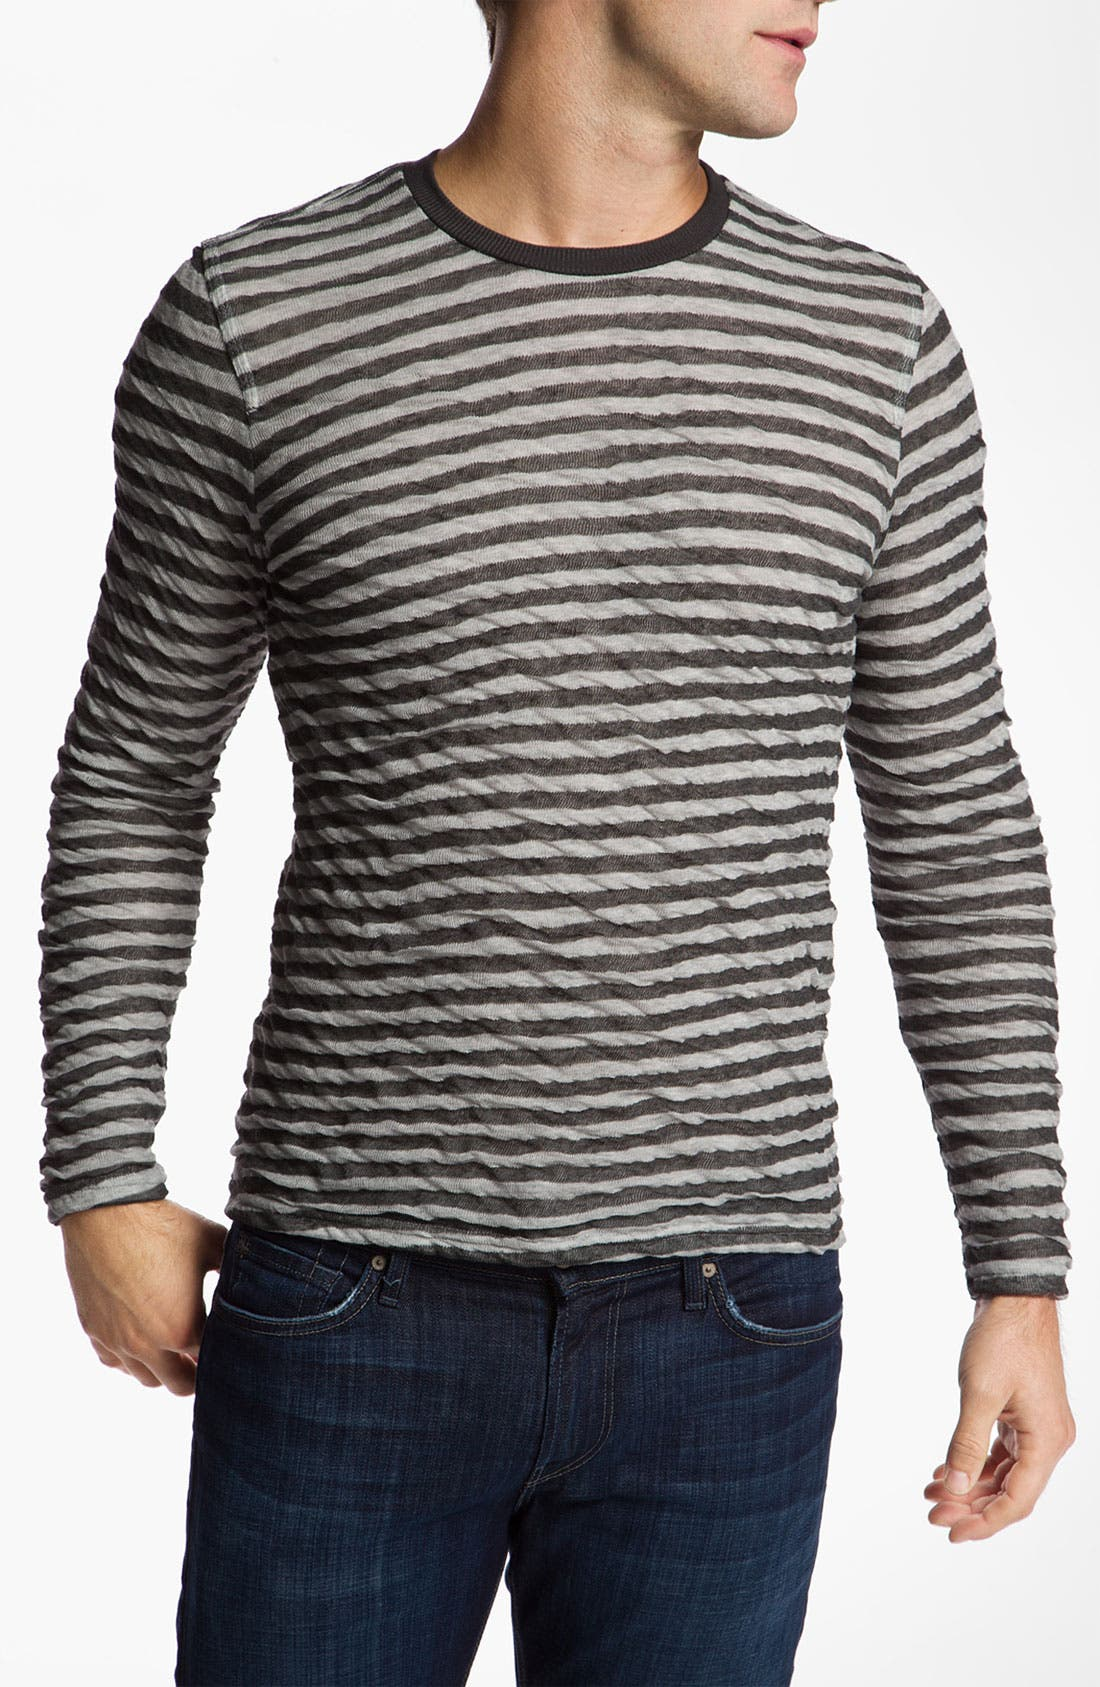 Main Image - 7 For All Mankind® Crinkle Striped Shirt